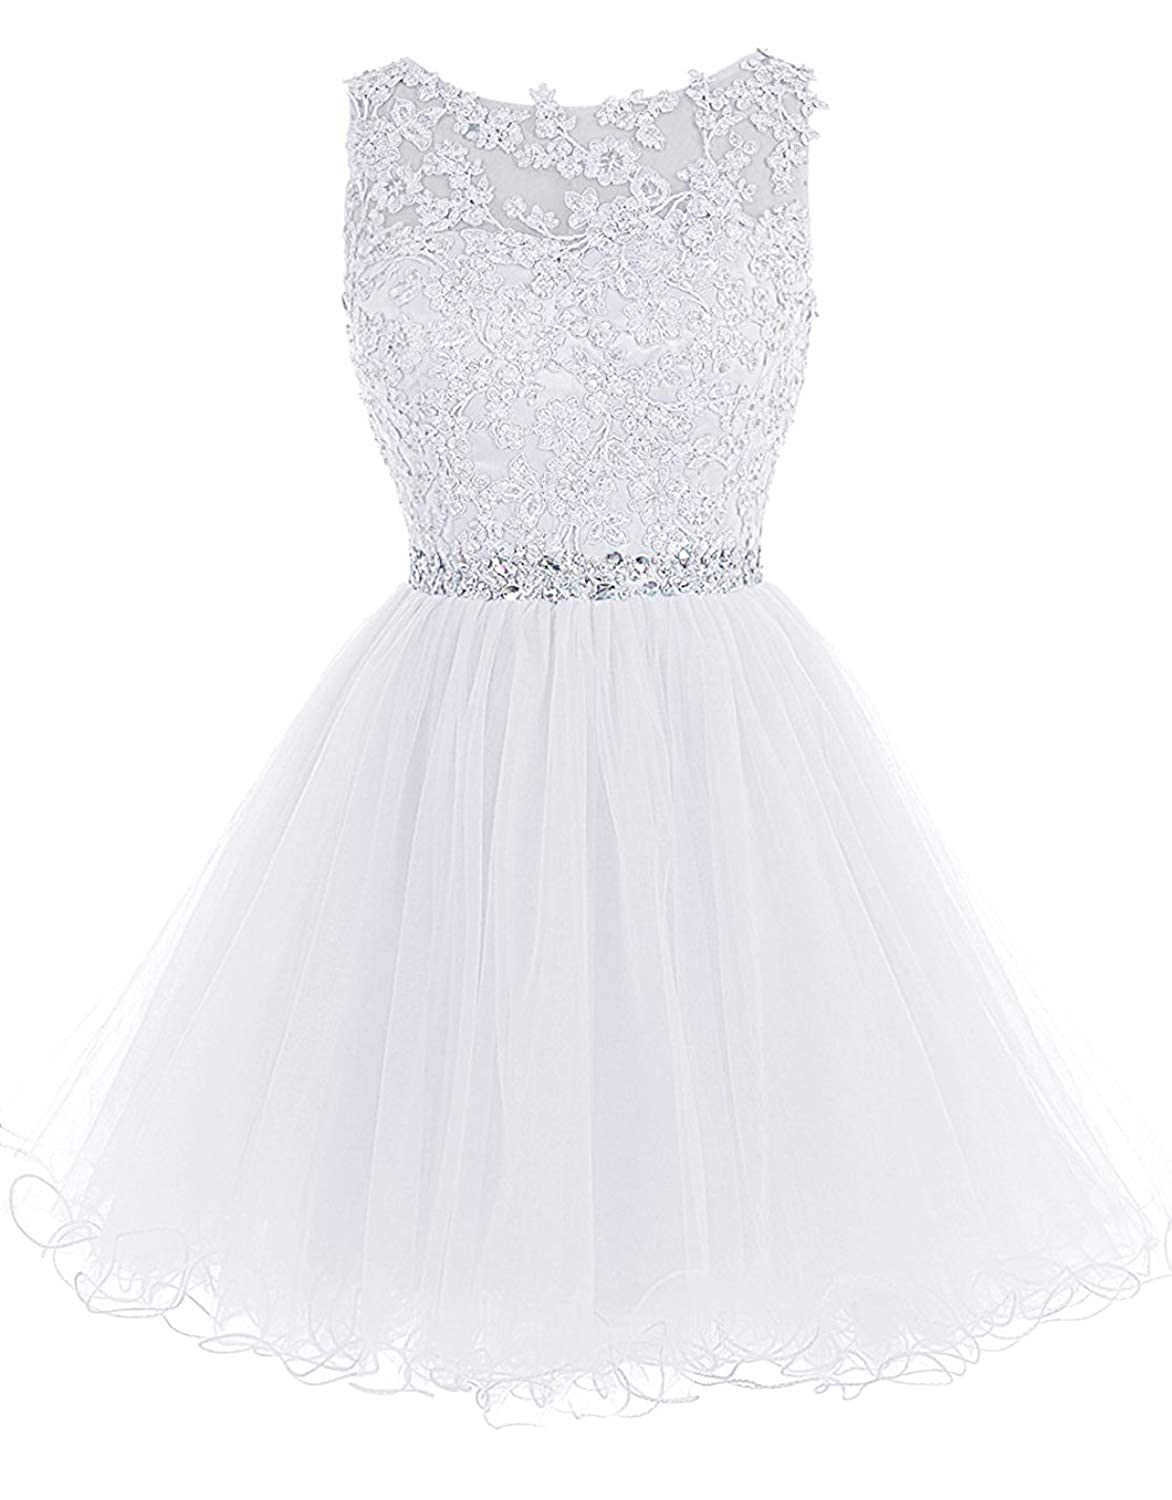 361white Sarahbridal Women's Short Tulle Beading Homecoming Dresses 2019 Prom Party Gowns